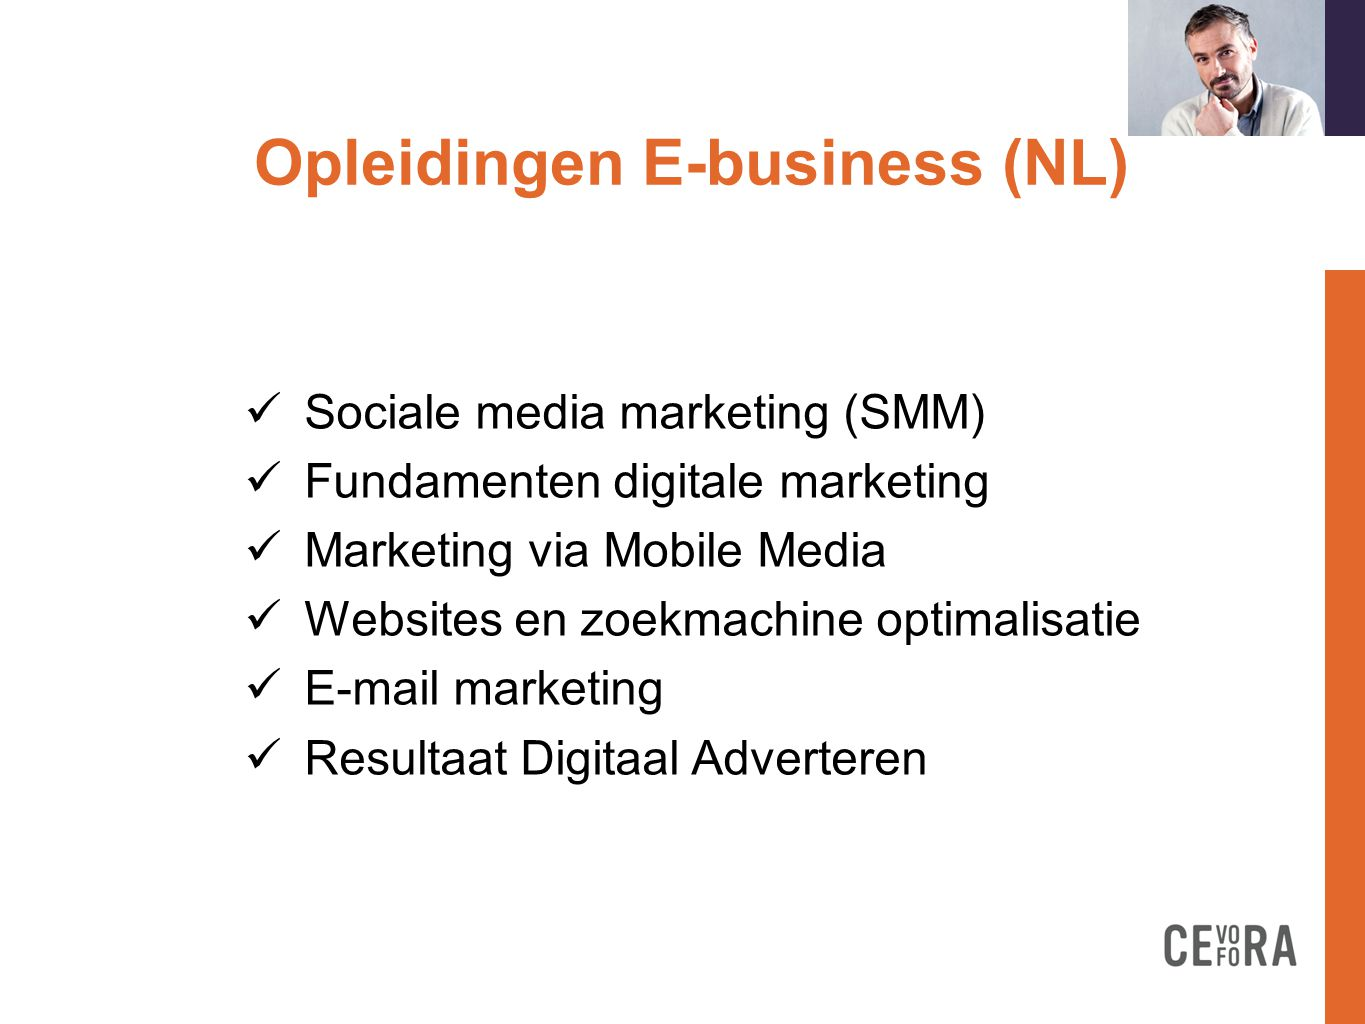 Opleidingen E-business (NL) formation doit  Sociale media marketing (SMM)  Fundamenten digitale marketing  Marketing via Mobile Media  Websites en zoekmachine optimalisatie   marketing  Resultaat Digitaal Adverteren